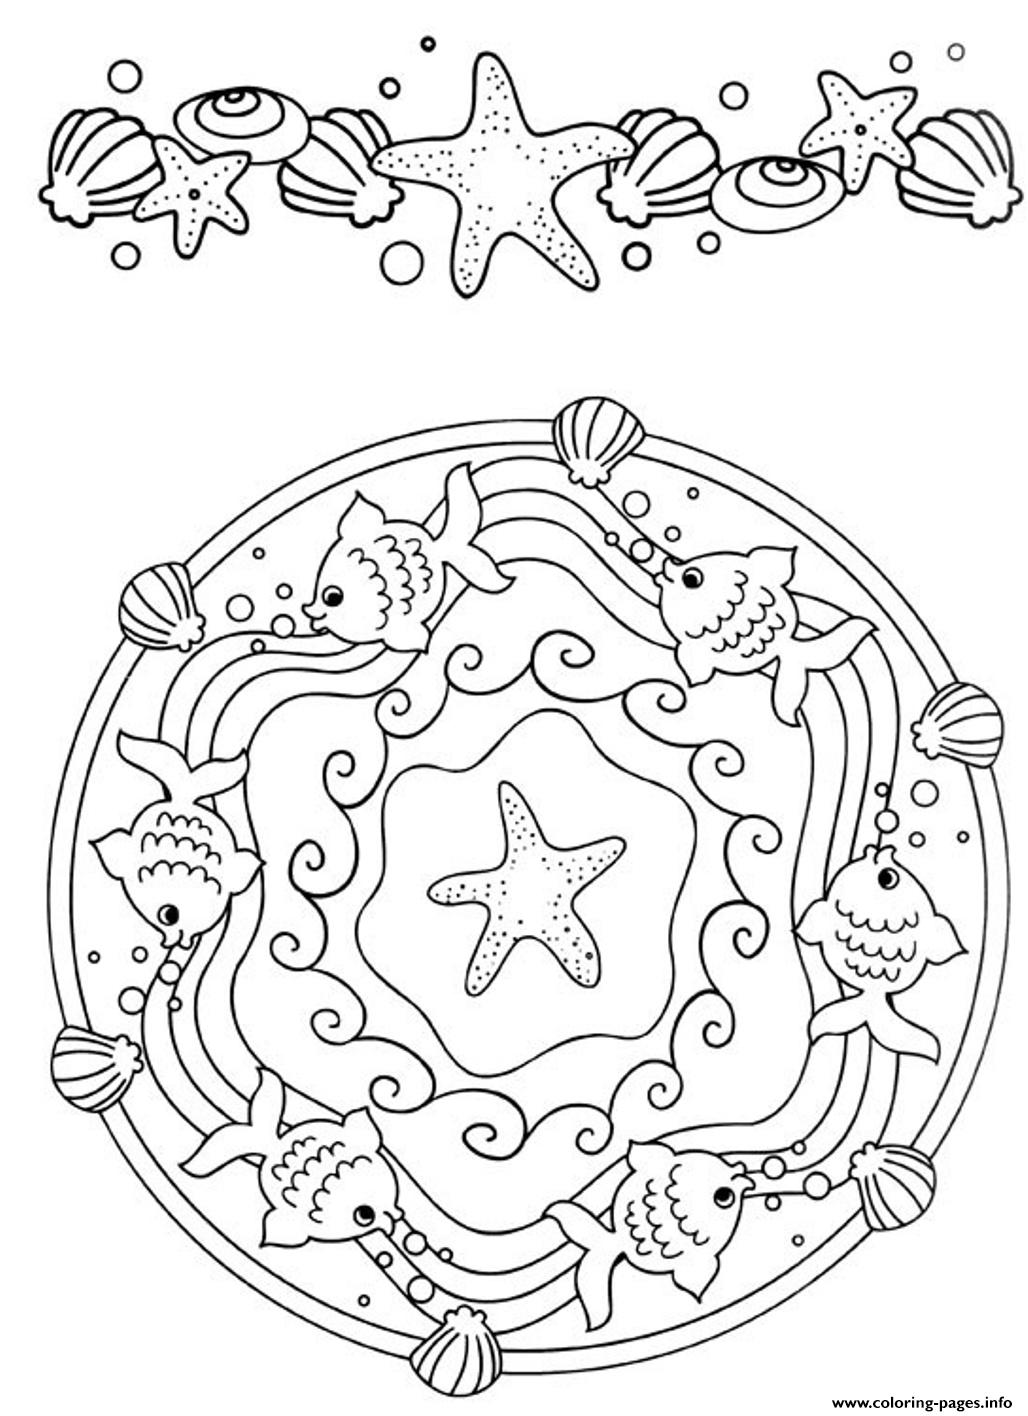 Mandala S Beautiful Oceandbb2 coloring pages